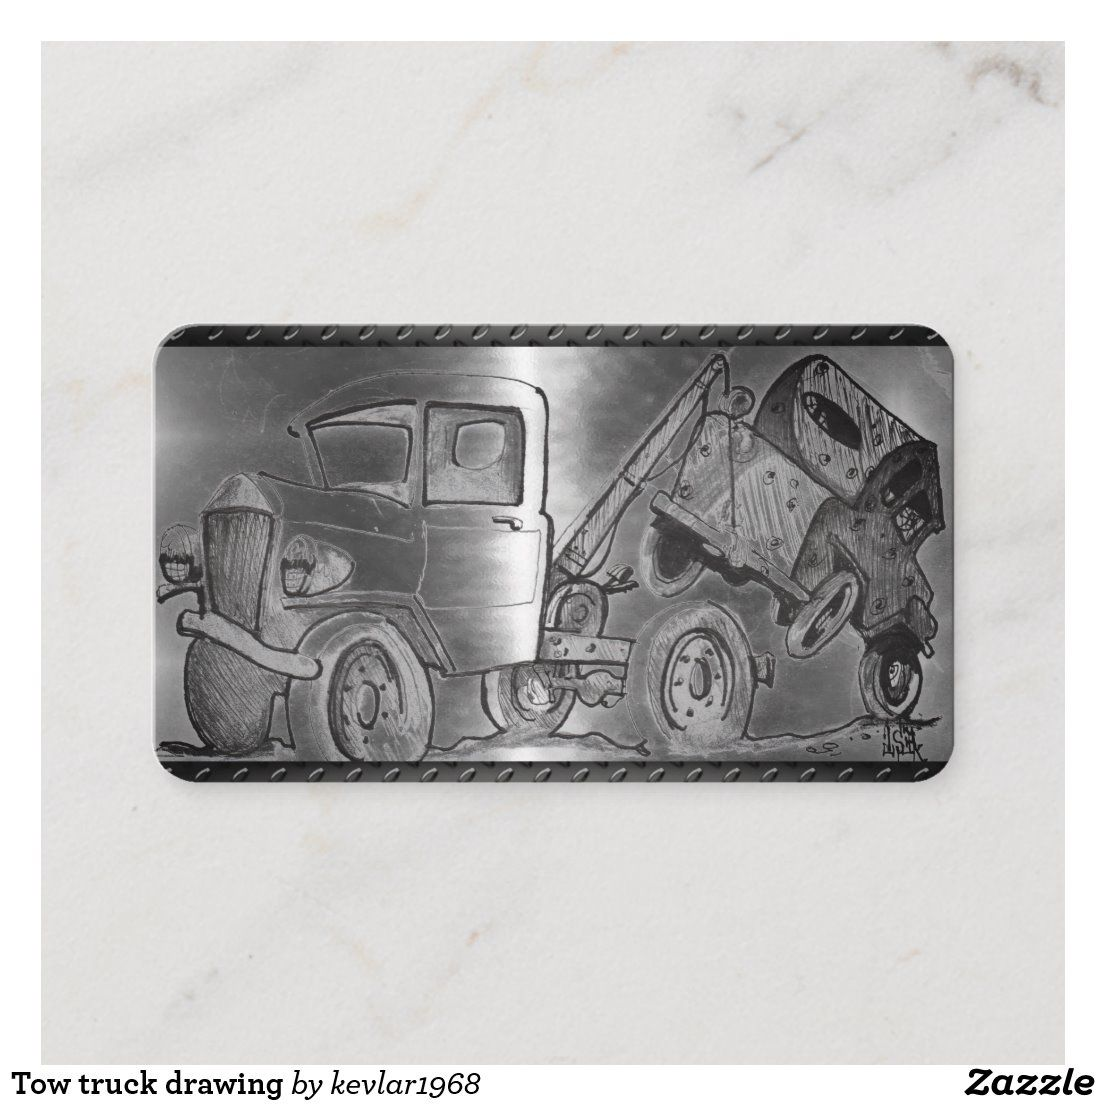 Tow truck drawing business card in 2020 Tow